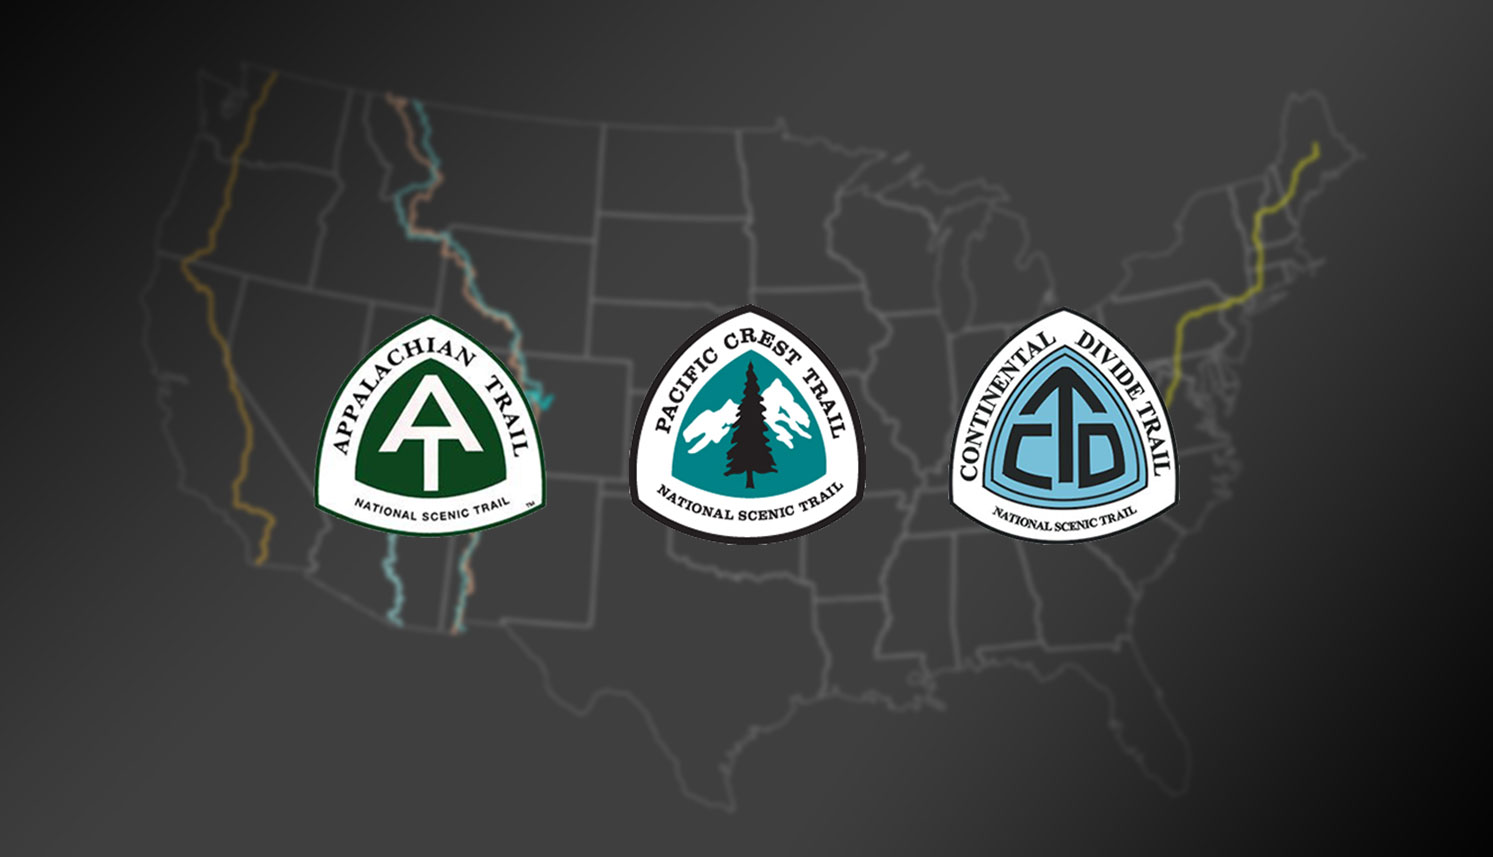 Thru-hiking triple crown logo & map